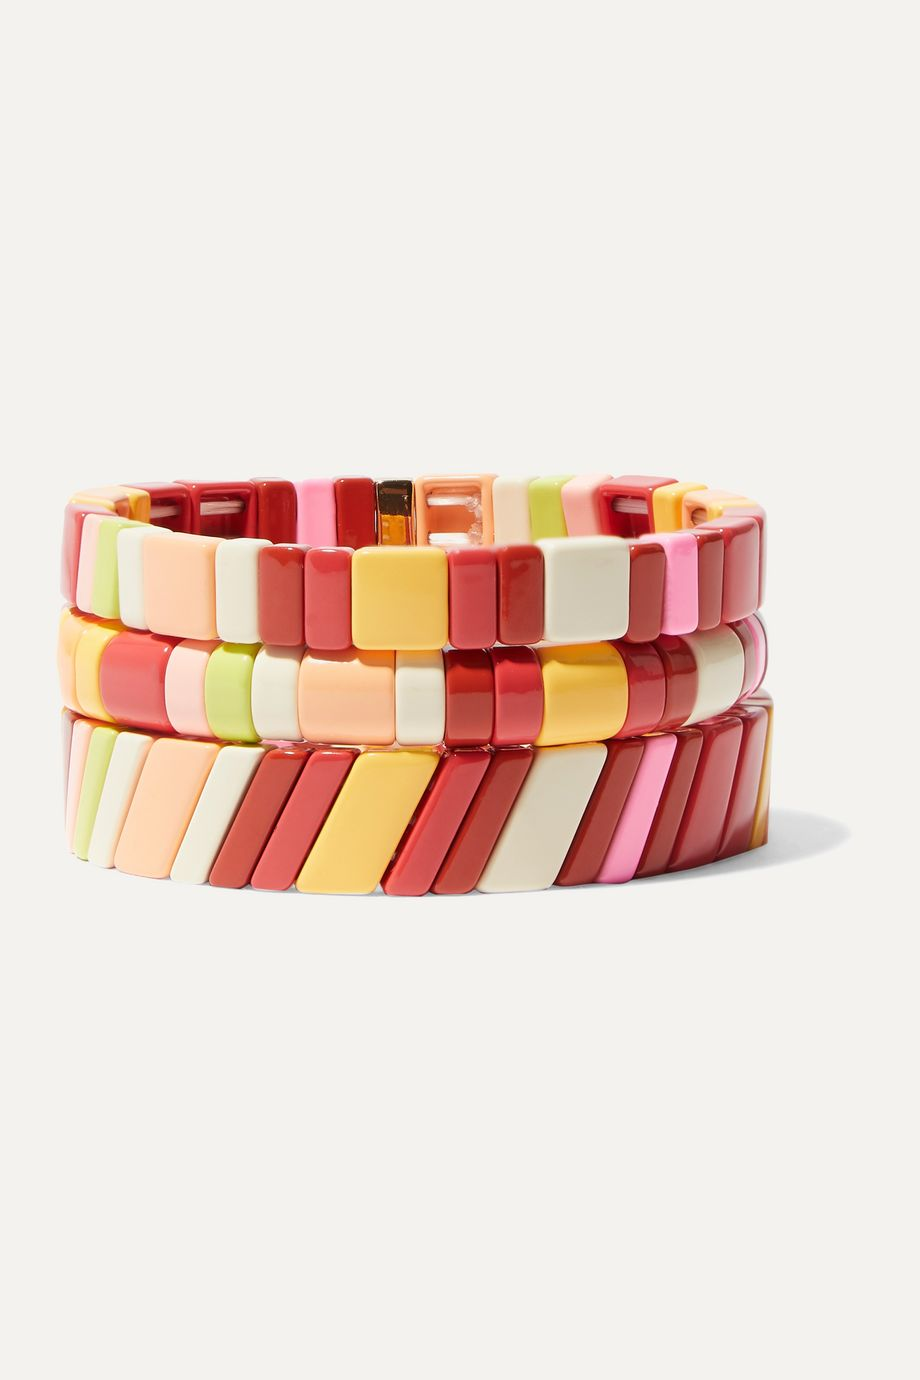 Roxanne Assoulin Negroni set of three enamel and gold-tone bracelets